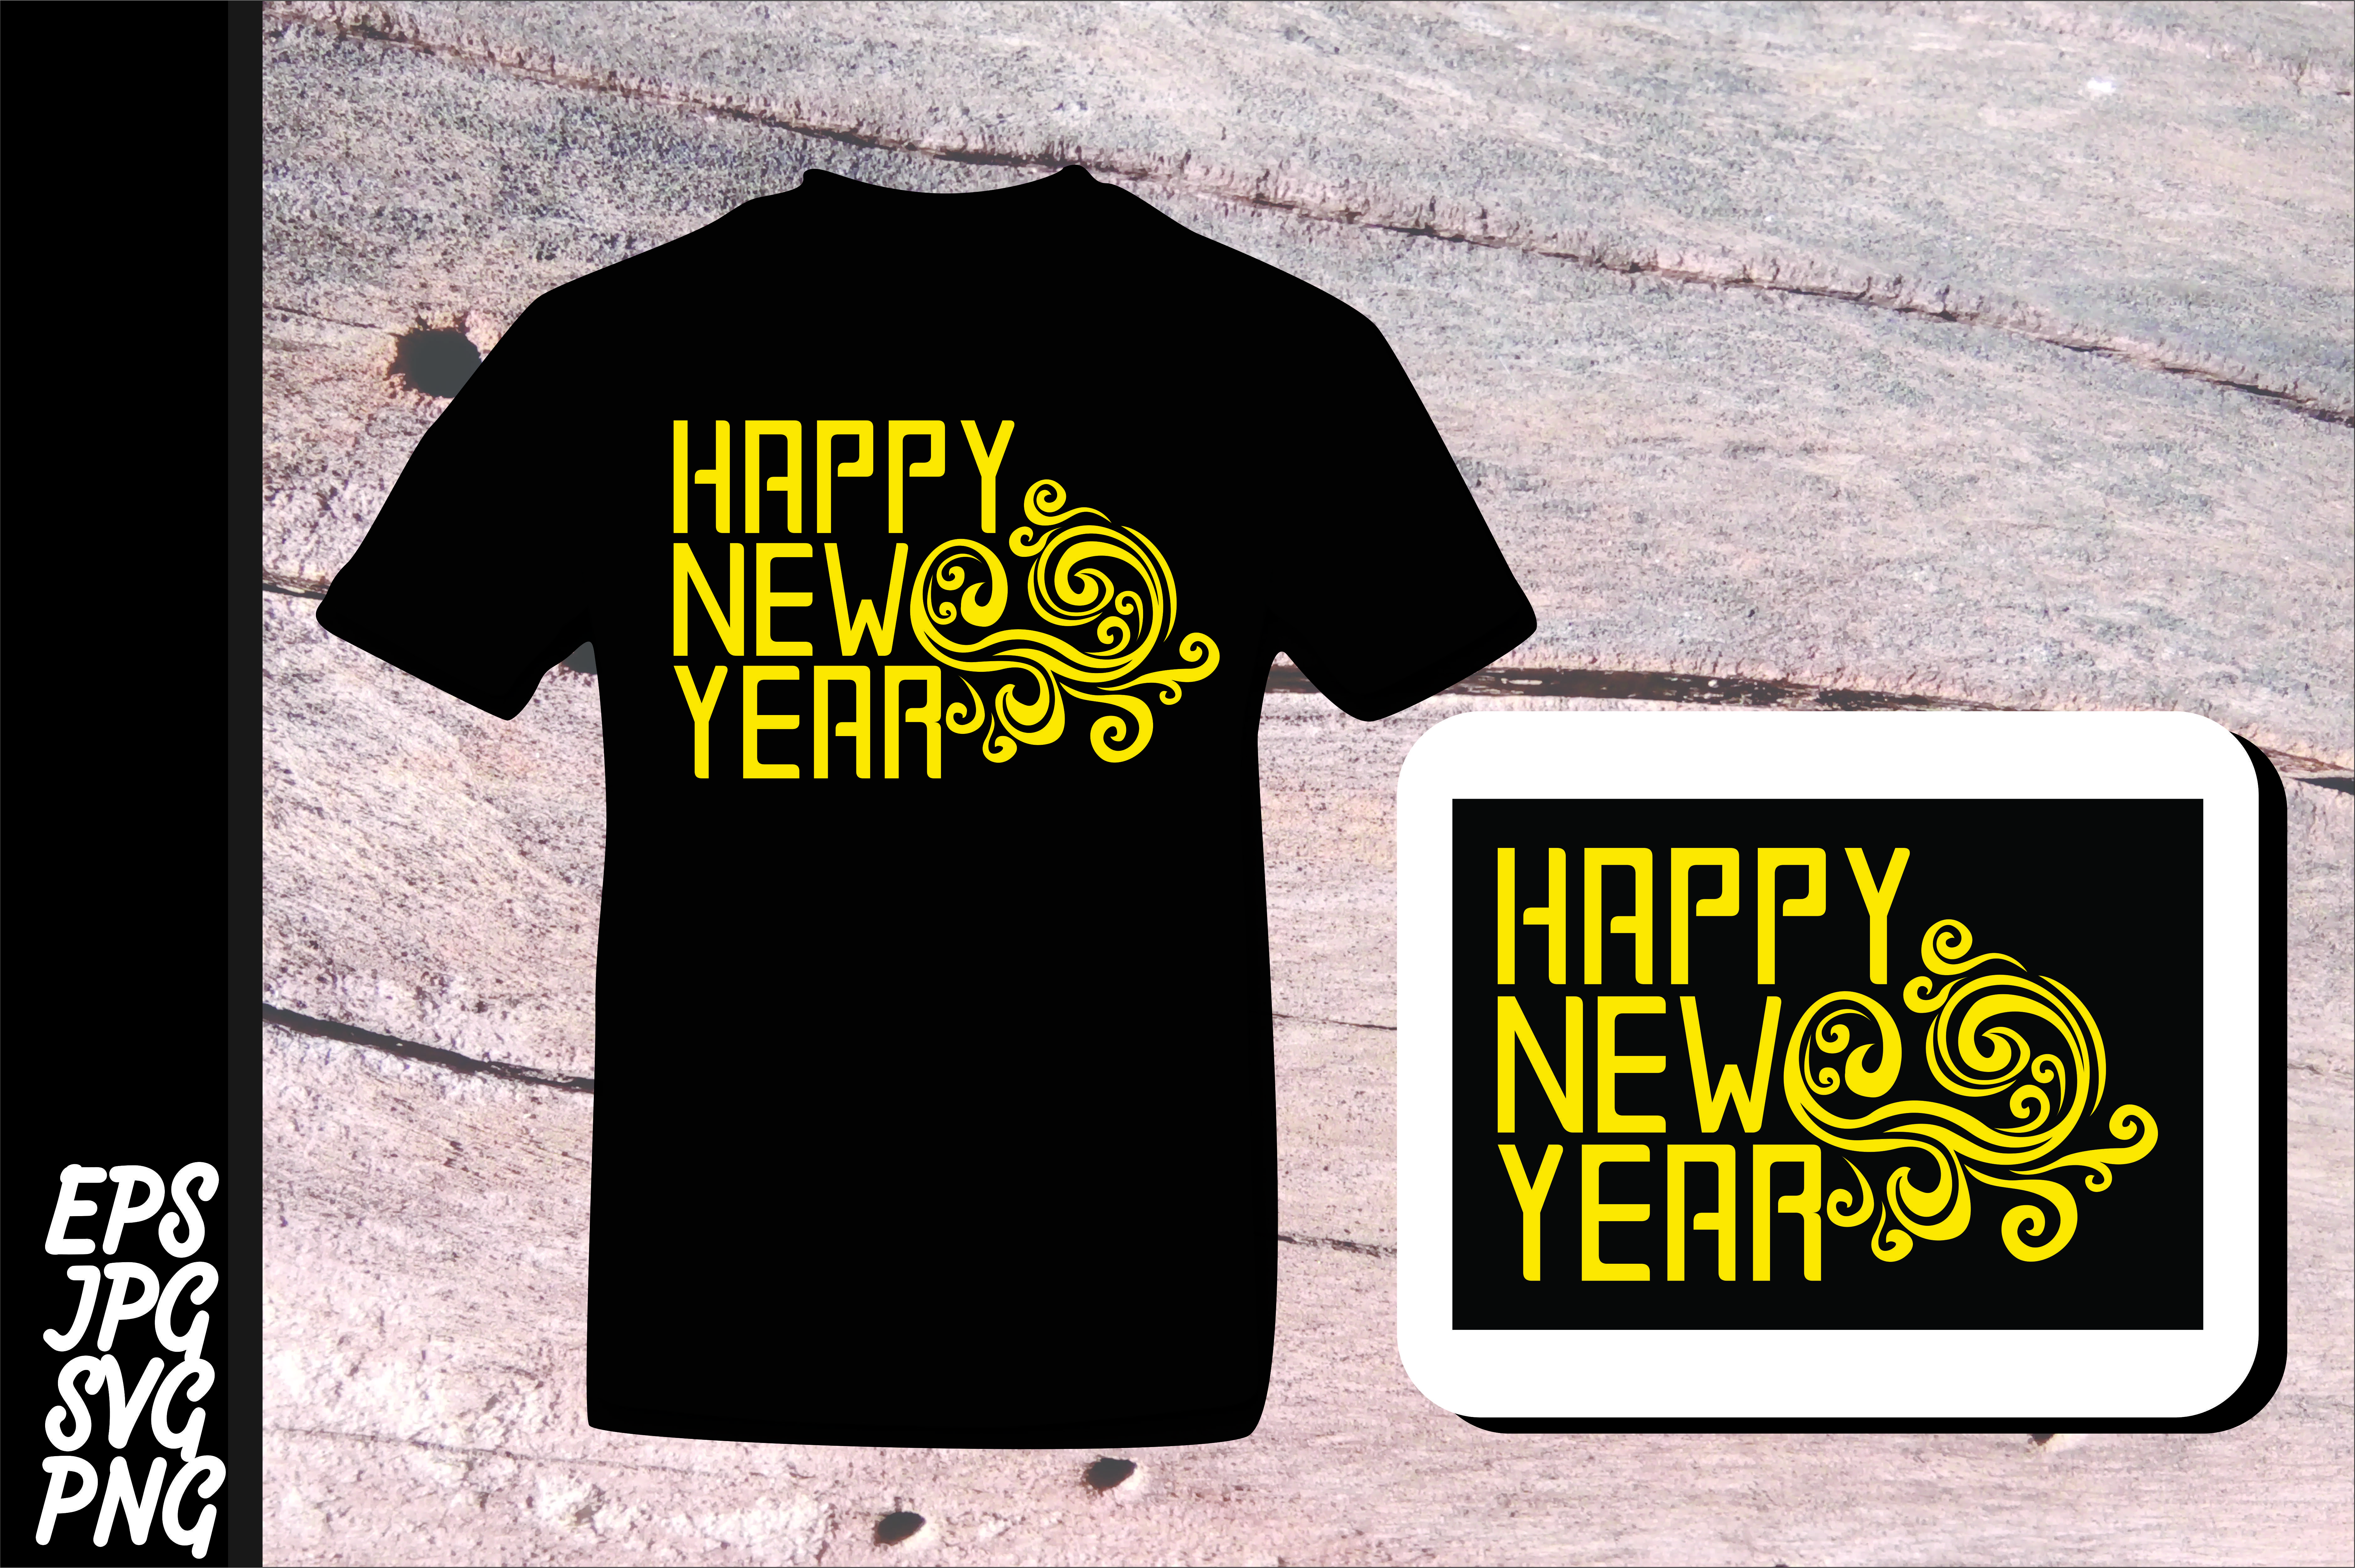 Download Free Printing Happy New Year Svg Graphic By Arief Sapta Adjie for Cricut Explore, Silhouette and other cutting machines.